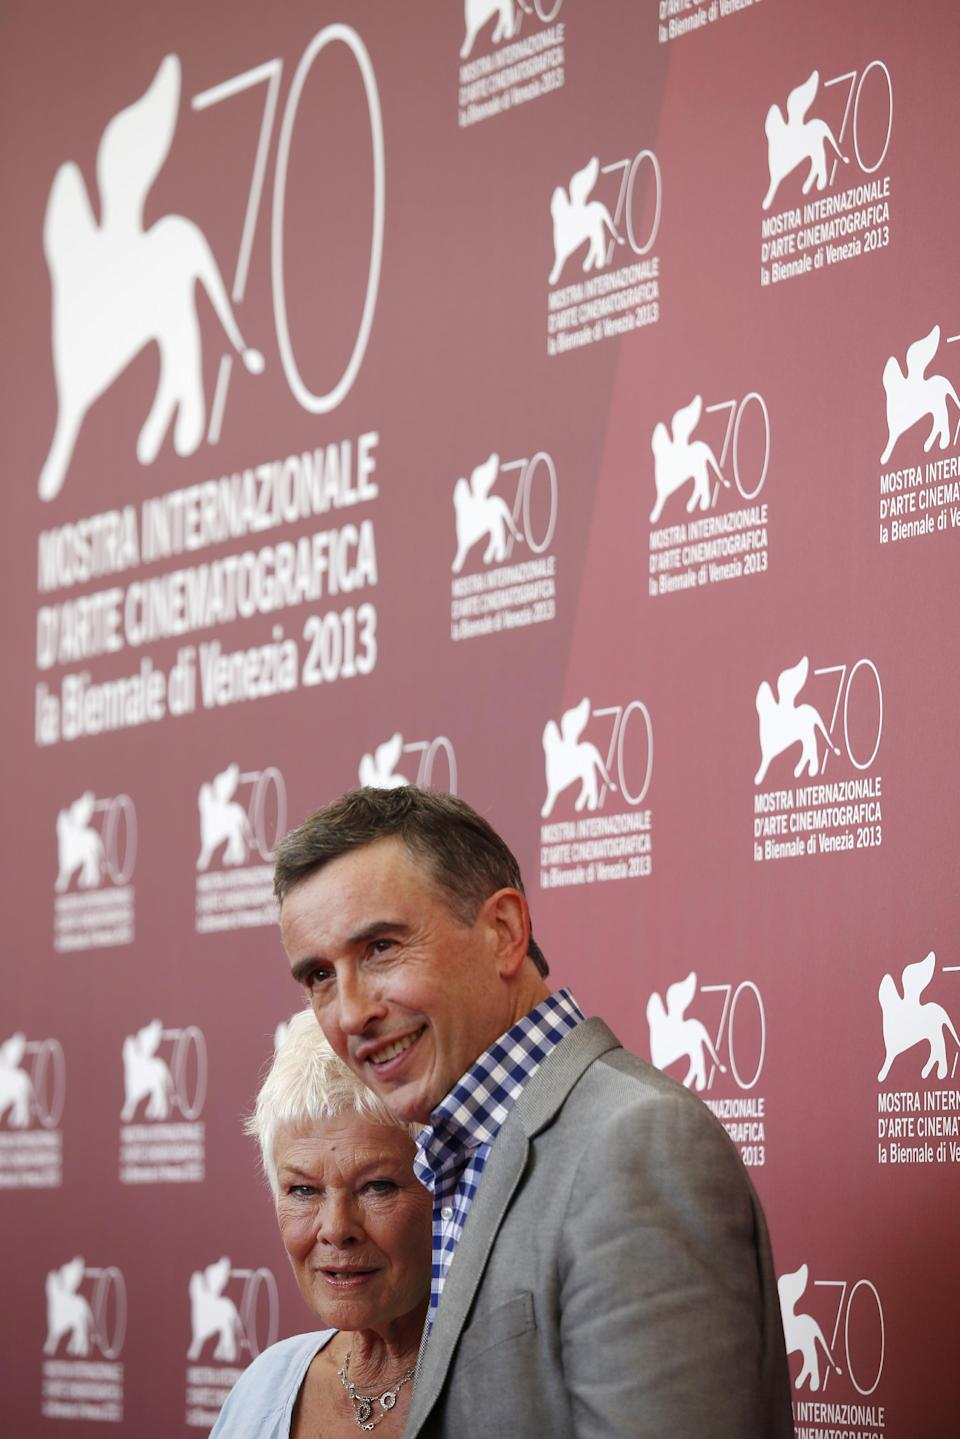 Actor Judi Dench, left, and Steve Coogan pose for photographers during a photo call to promote the film Philomena at the 70th edition of the Venice Film Festival held from Aug. 28 through Sept. 7, in Venice, Italy, Saturday, Aug. 31, 2013. (AP Photo/David Azia)